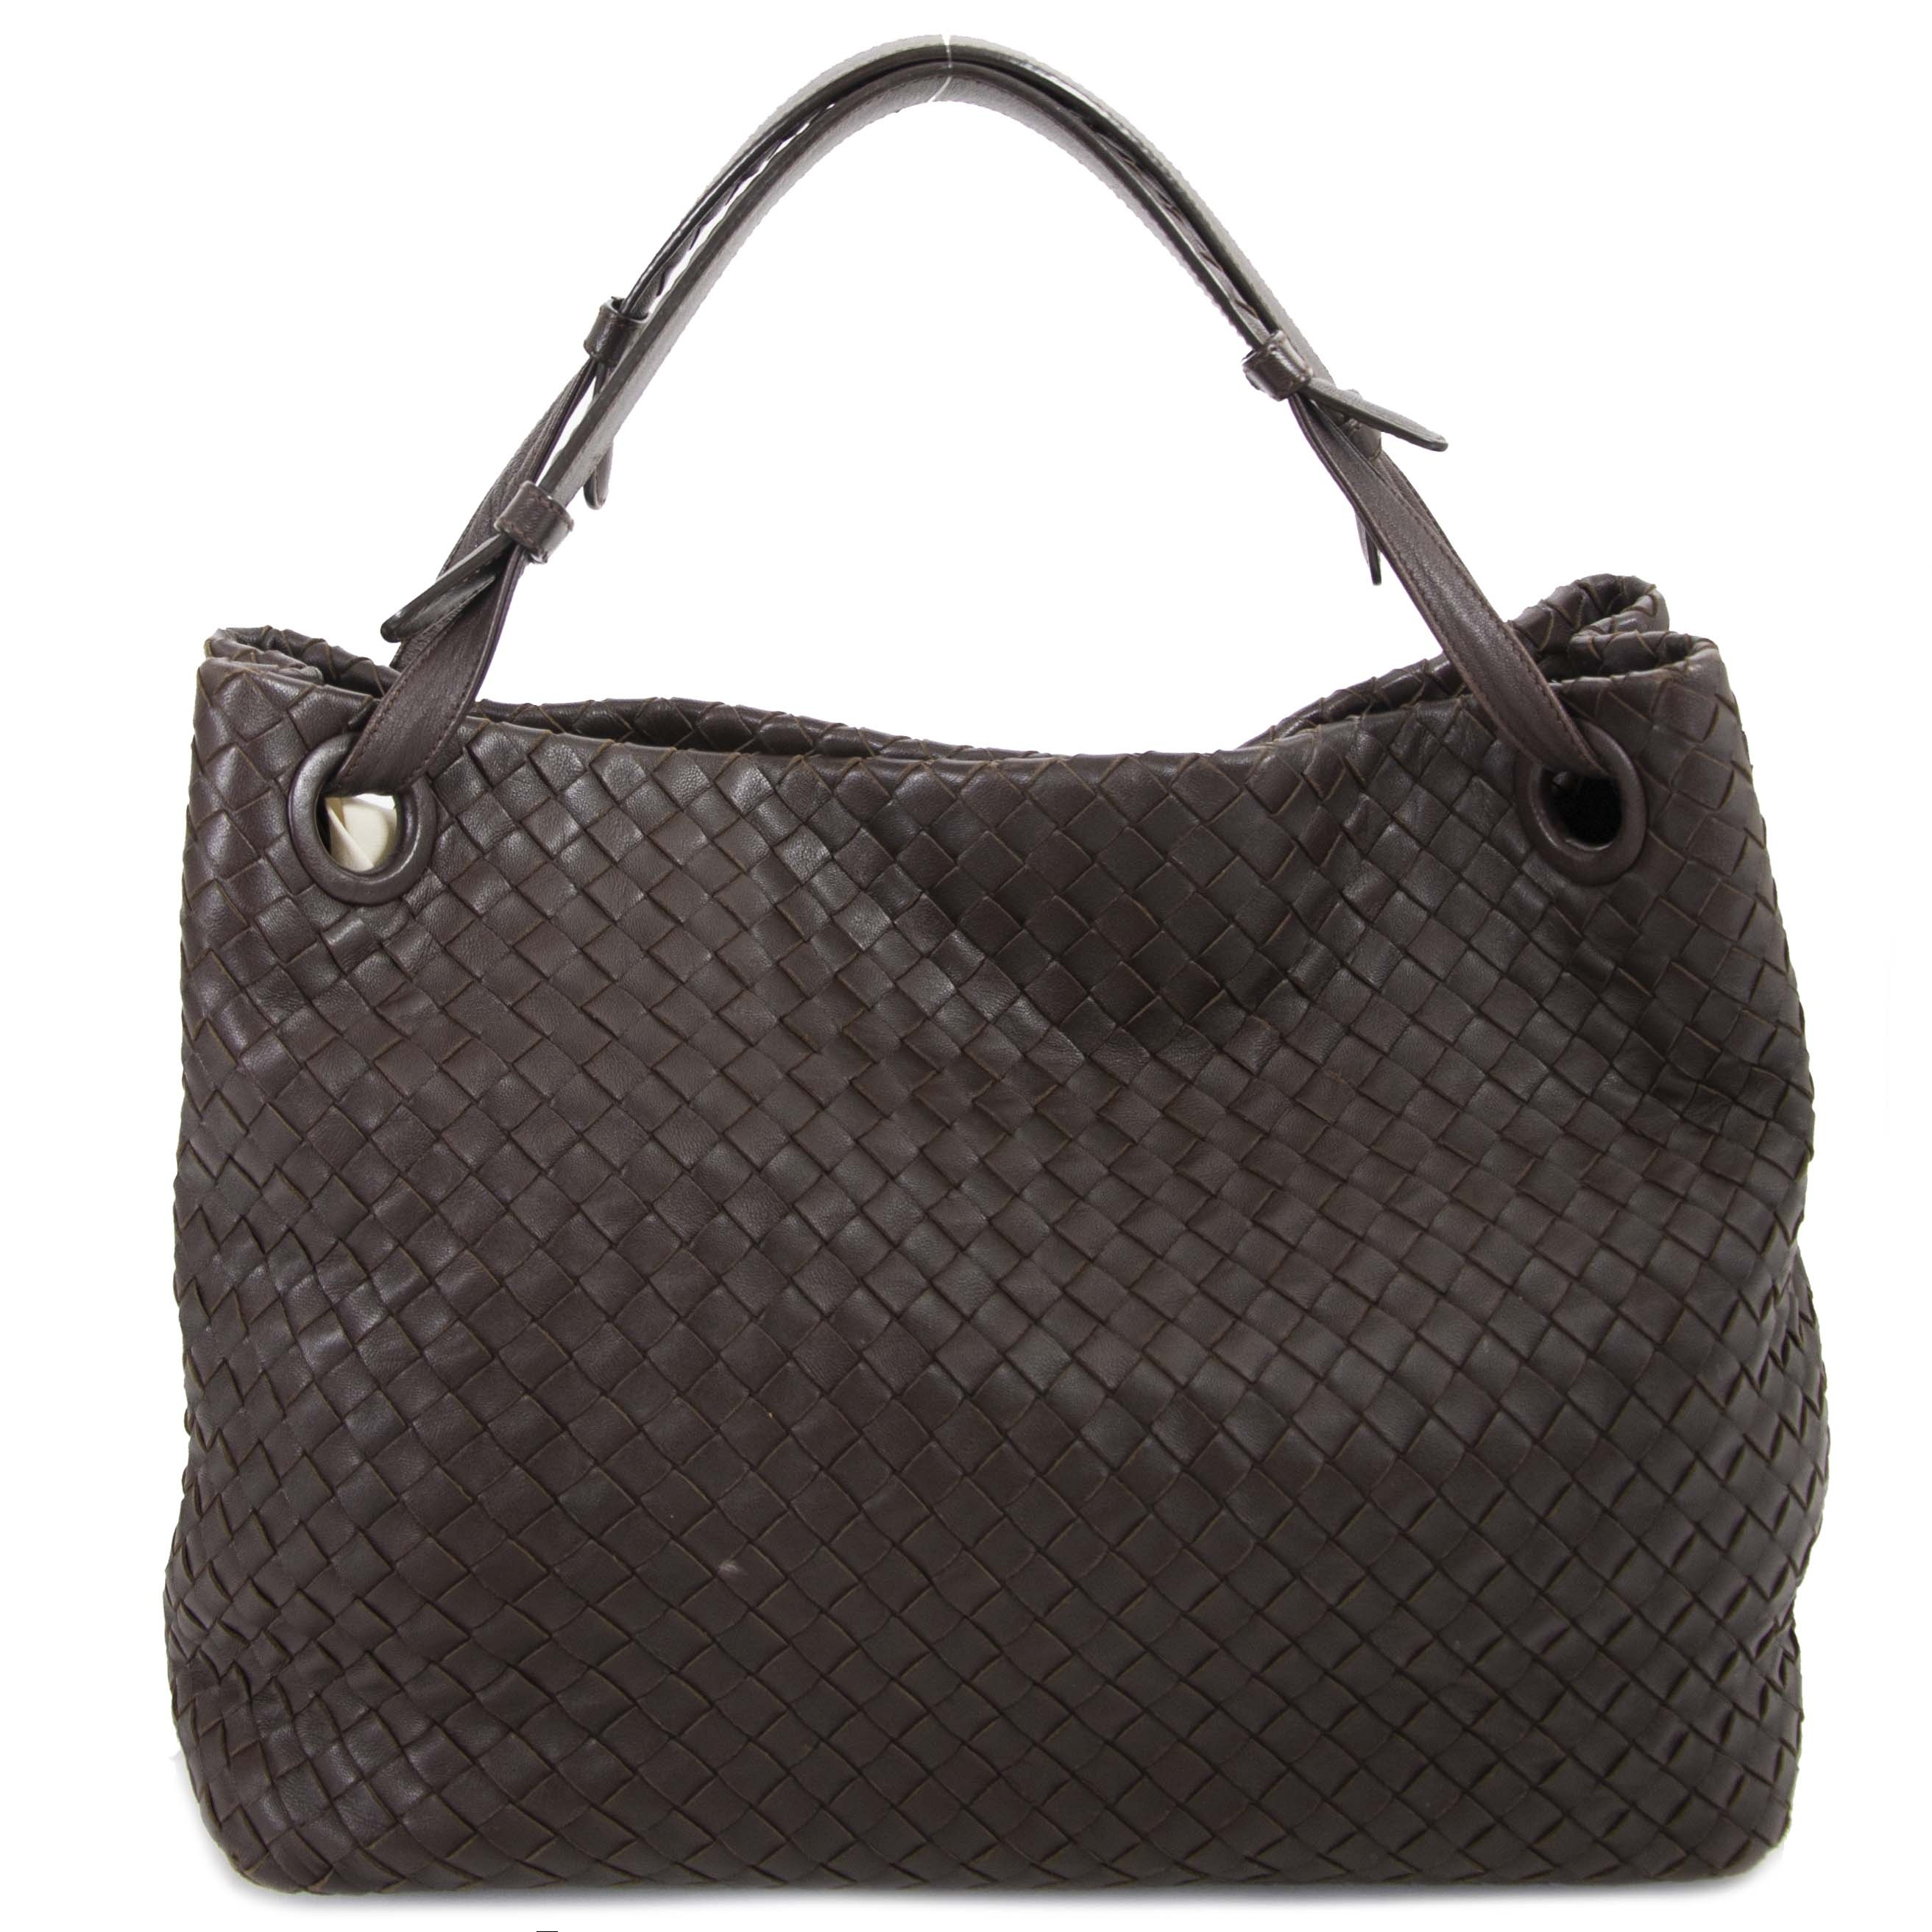 Authentic second hand Bottega Veneta Dark Brown Garda Shoulder Bag shop online at webshop LabelLOV